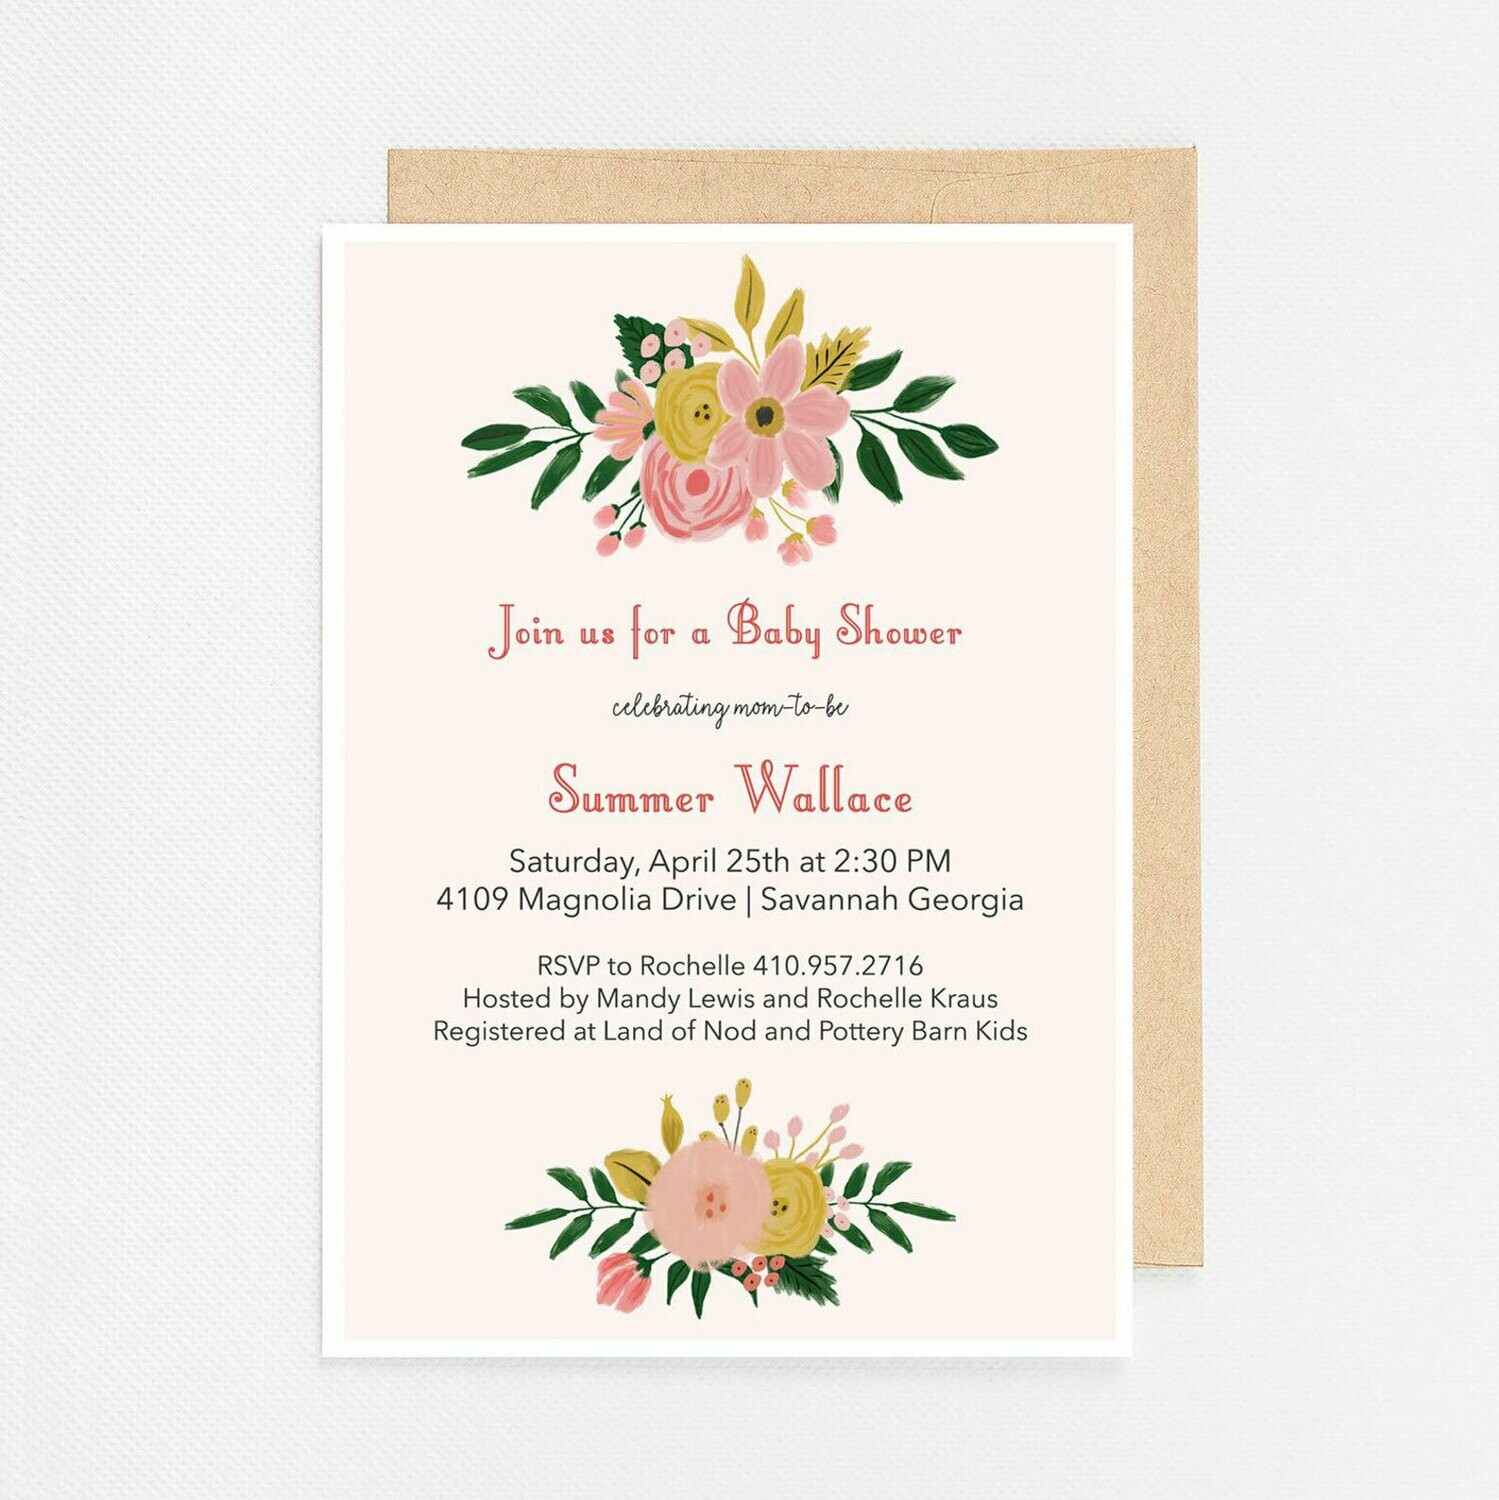 Floral Bouquets Invitation - Digital or Printed